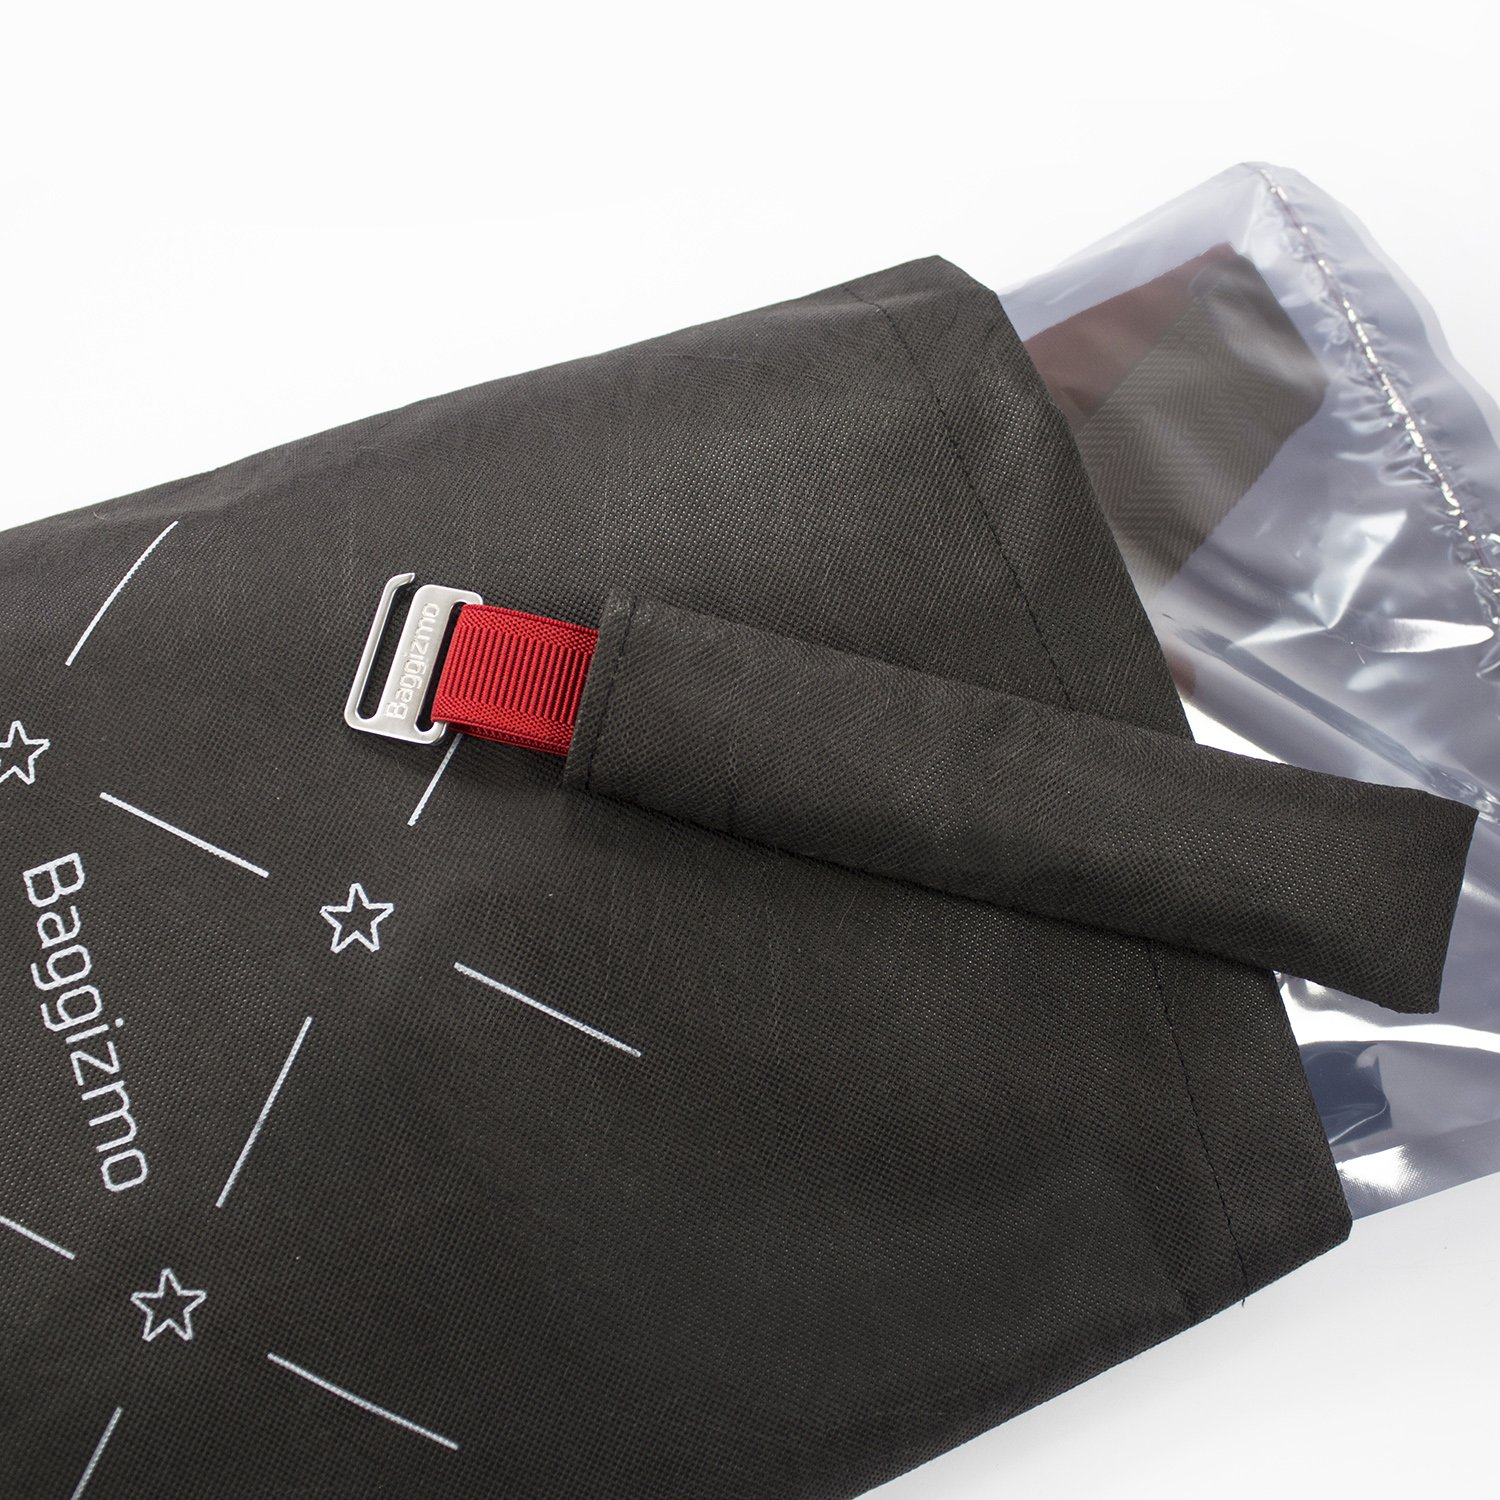 Baggizmo textile buckle in gift packaging